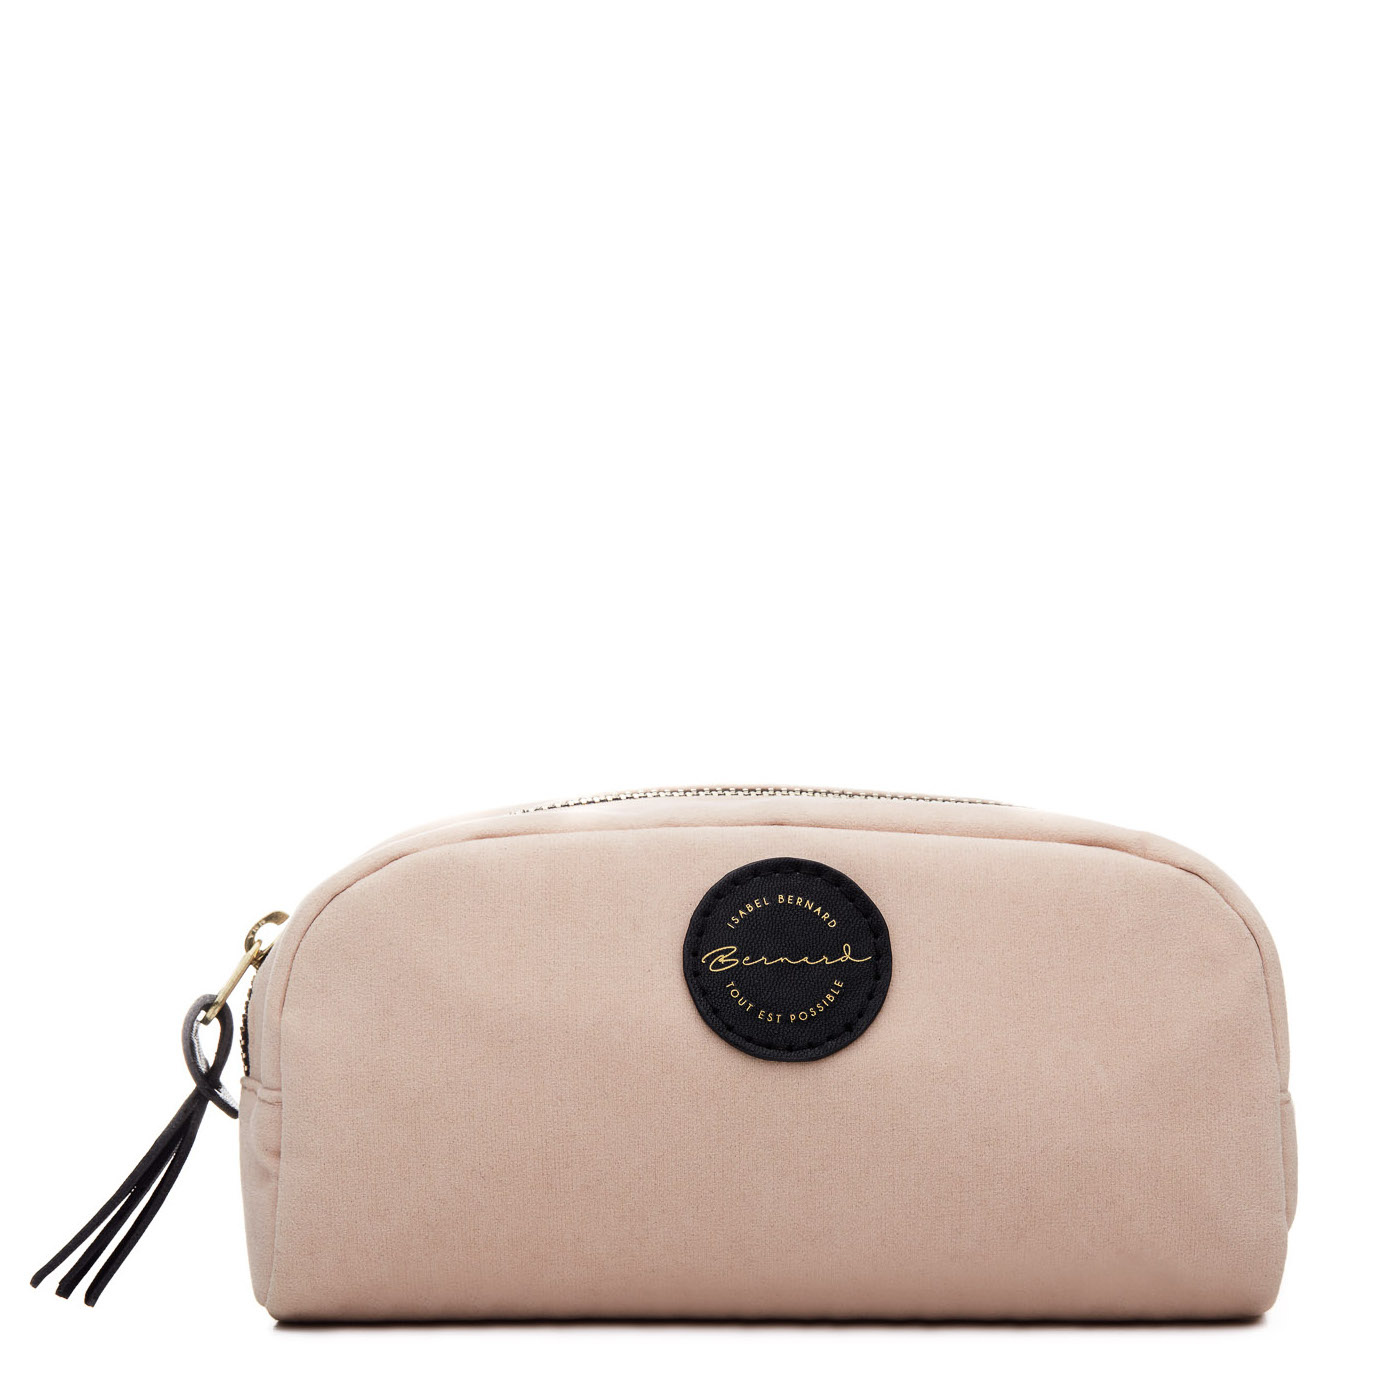 Isabel Bernard Beauty bag rosa